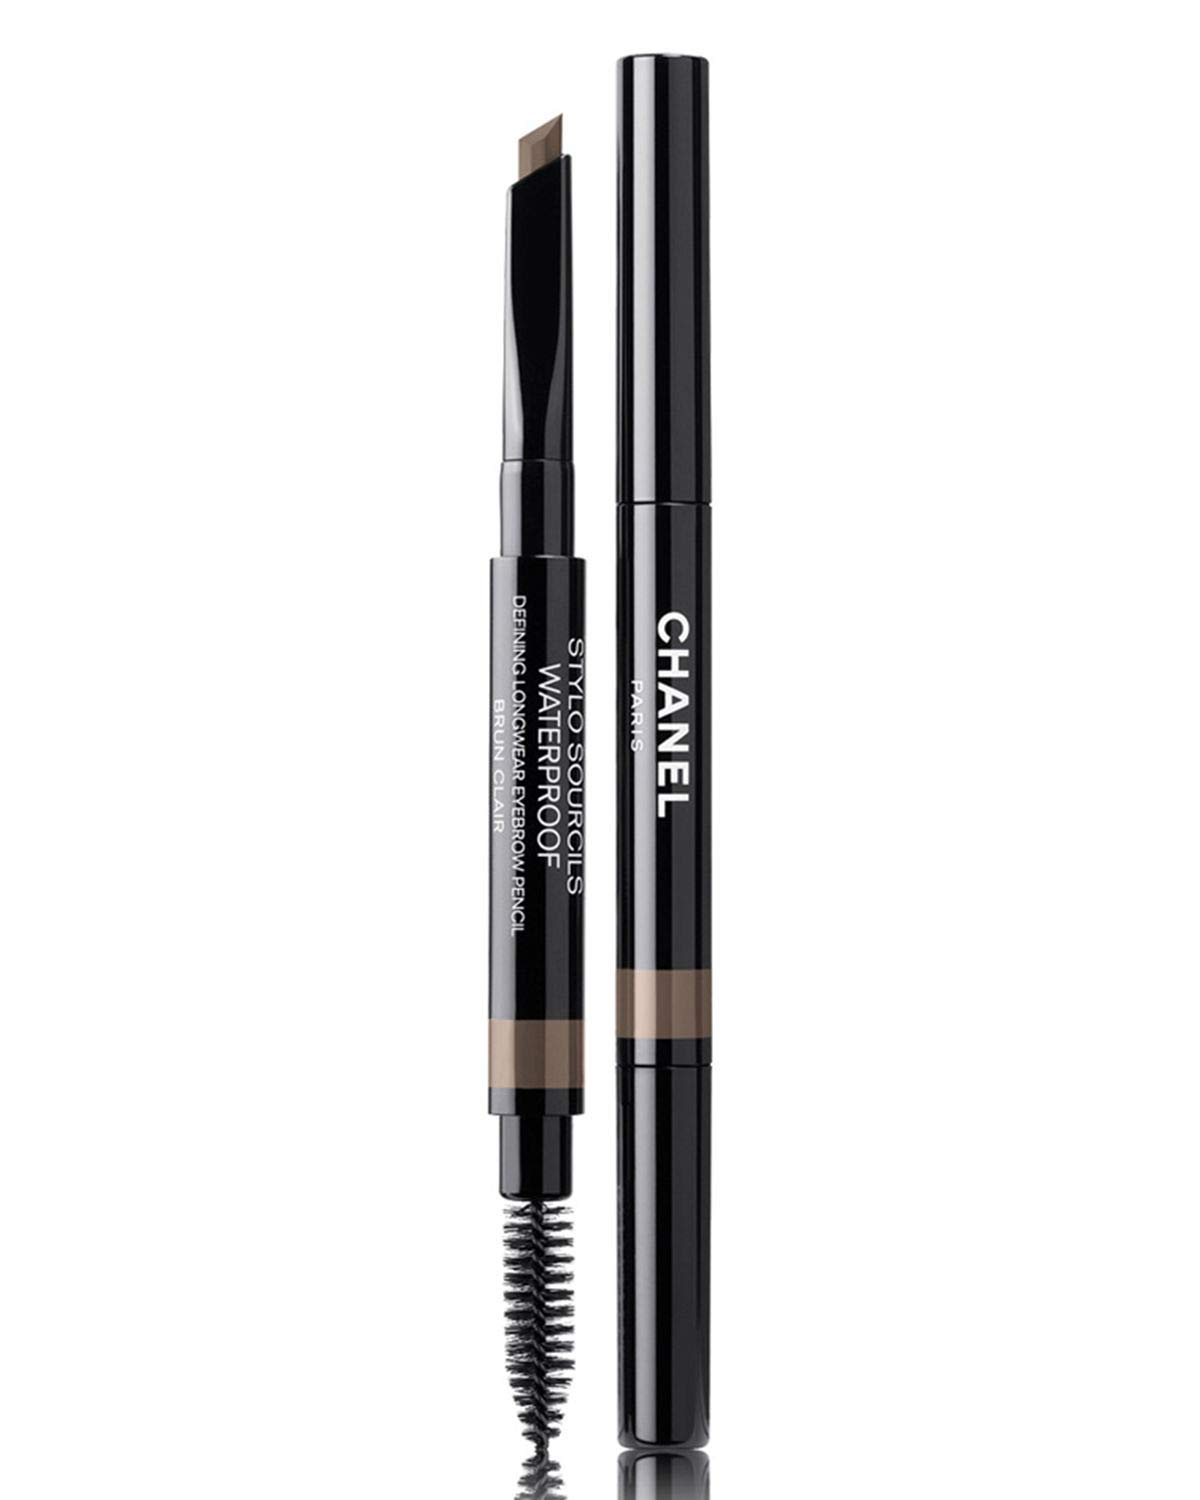 NIB STYLO SOURCILS WATERPROOF DEFINING LONGWEAR EYEBROW PENCIL Color: 808 Brun Clair + Free Trial Size Designer Beauty Gift with Purchase by Designer CHANEL Beauty A177